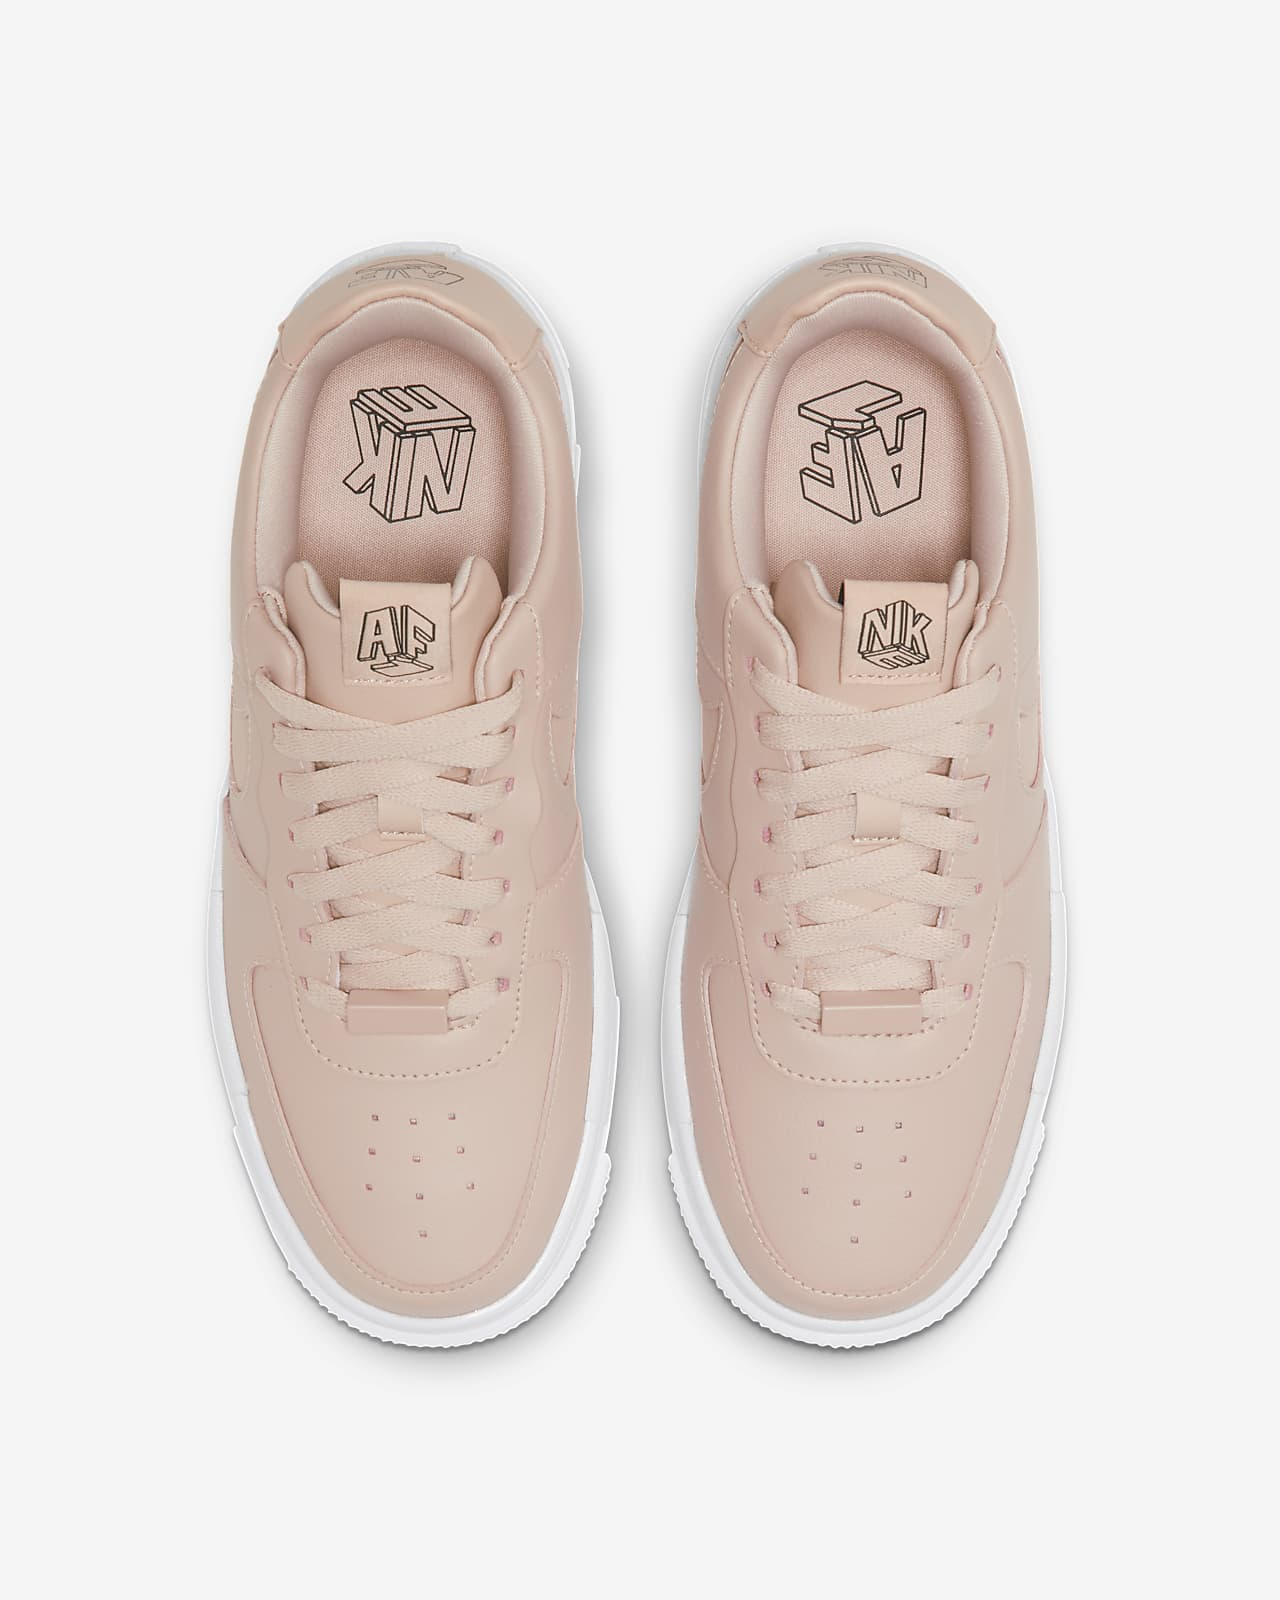 Chaussure Nike Air Force 1 Pixel pour Femme